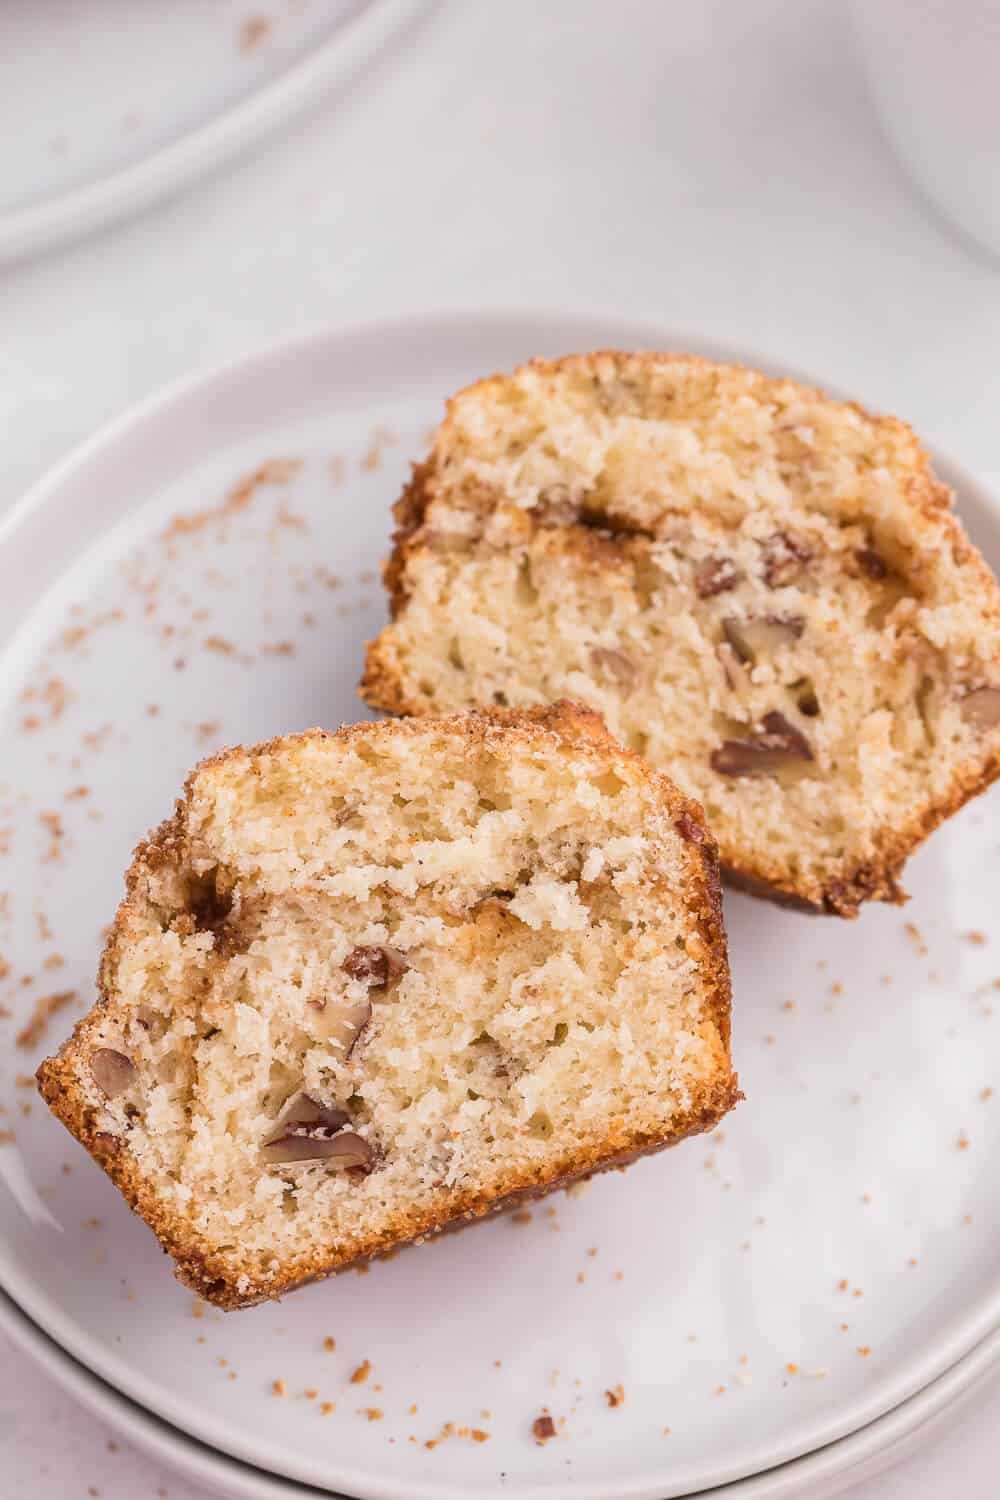 Sliced pecan coffee cake muffins a plate